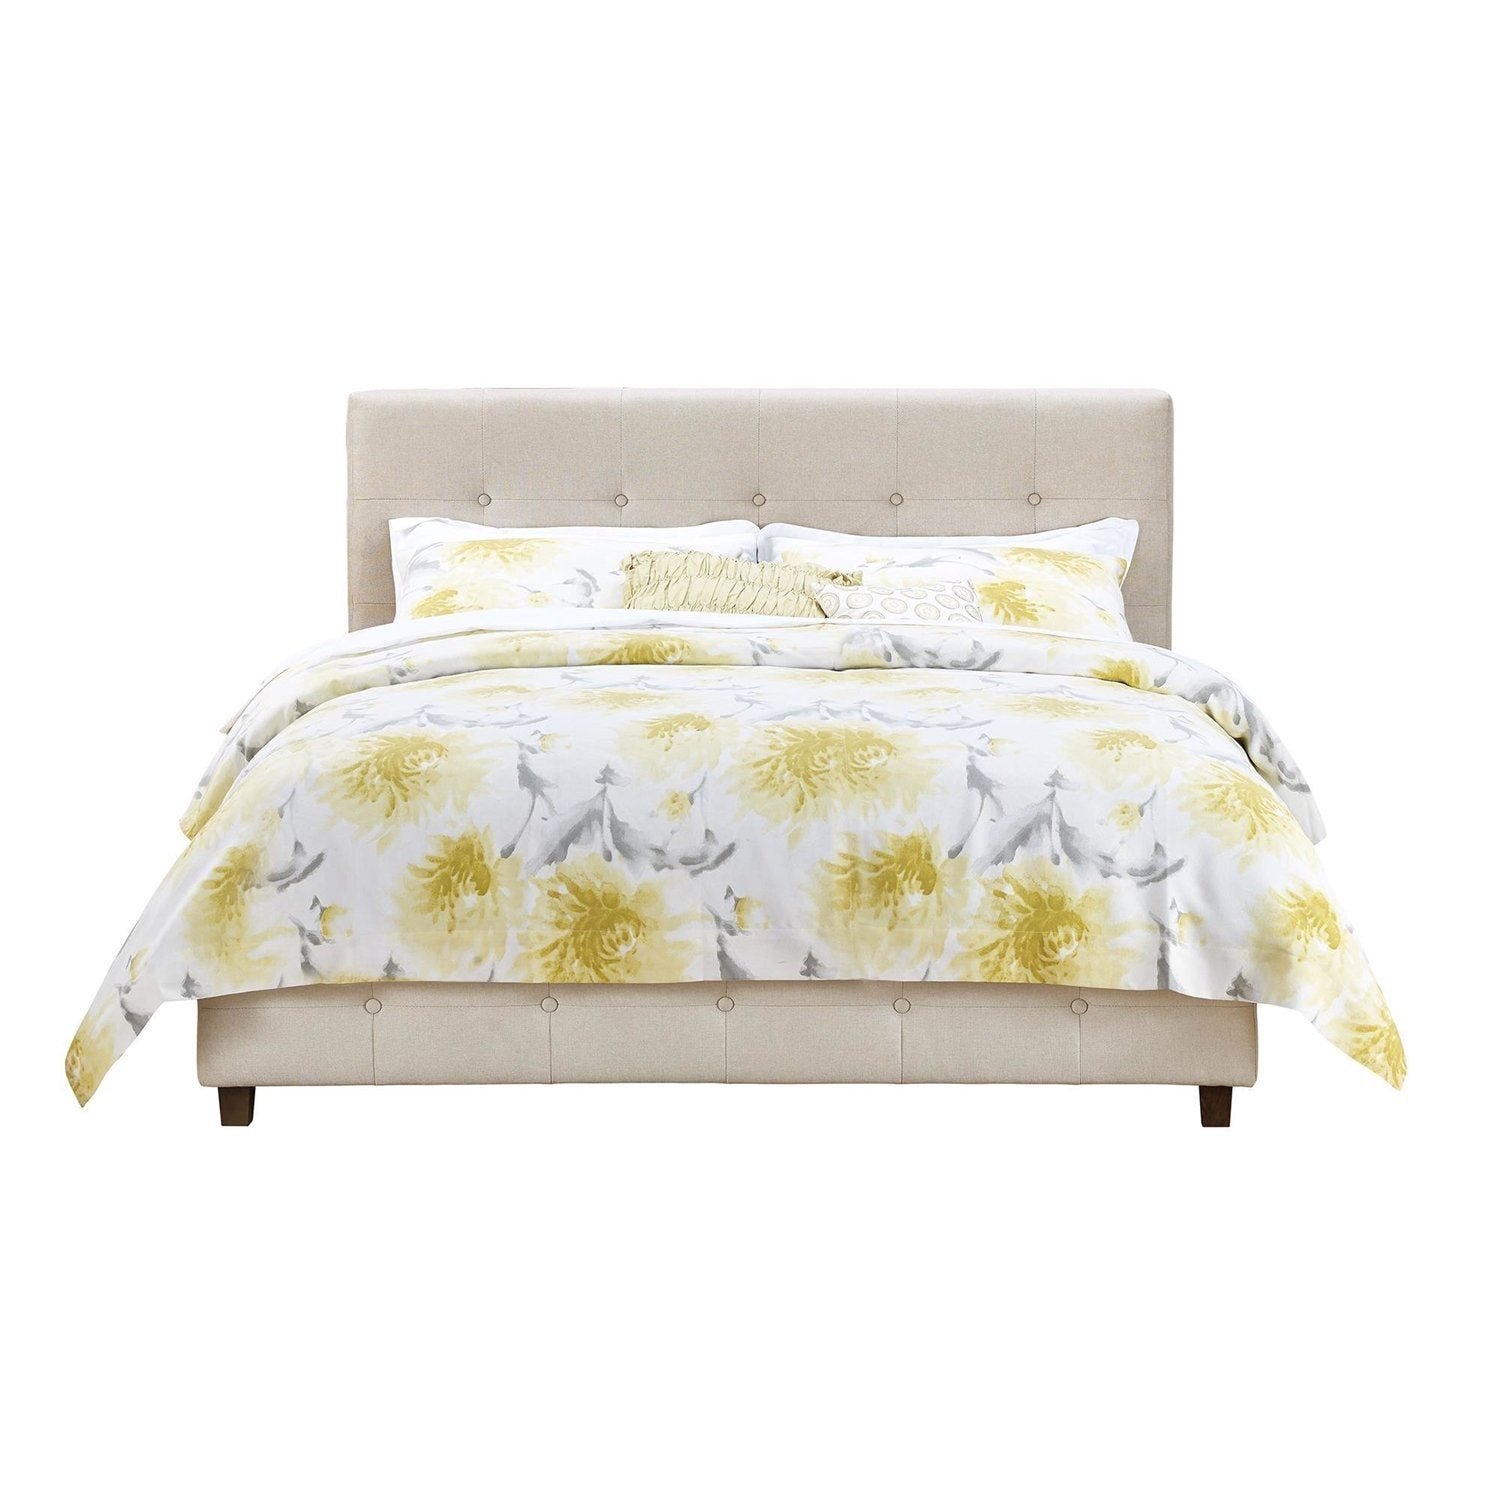 Roberts Full Size Upholstered Bed